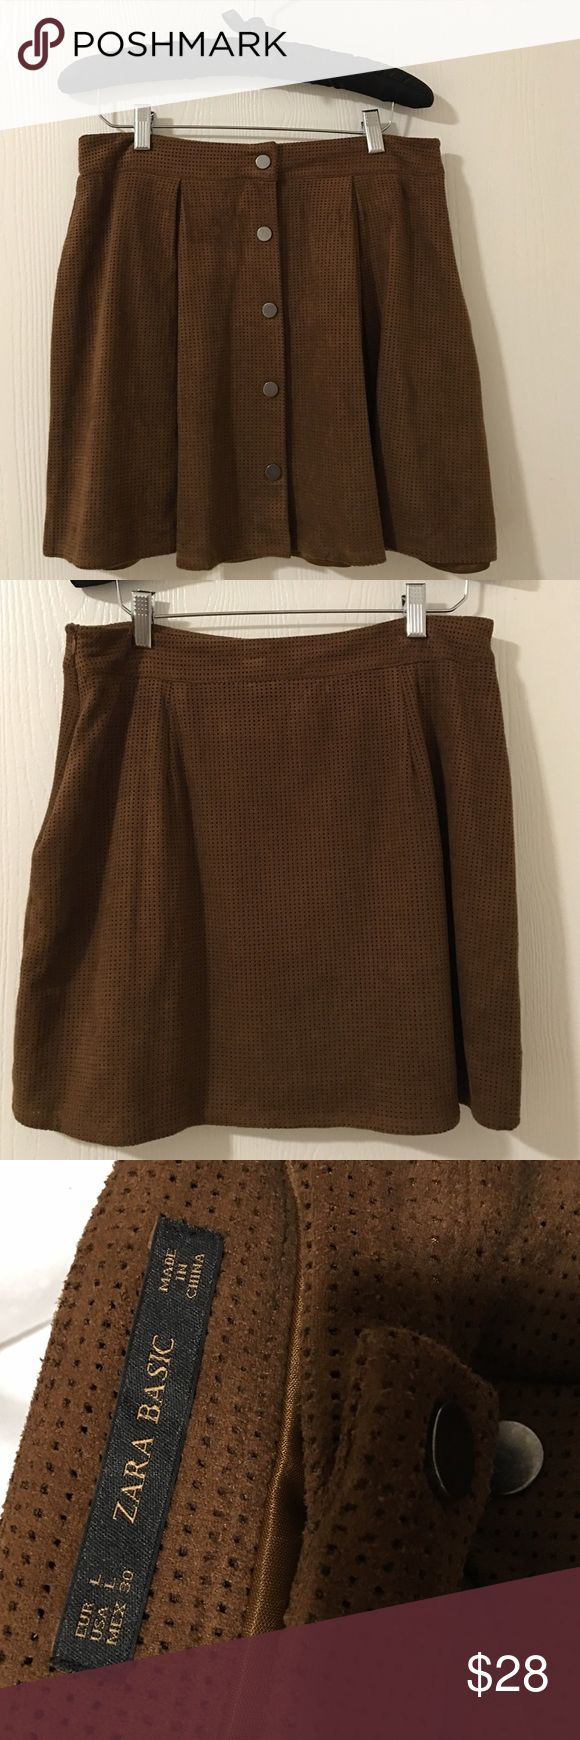 ✨CYBER MONDAY SALE✨Zara Button Skirt NWOT This gorgeous skirt is perfect for Fall/Winter! Great for pairing with stockings or a coat! Size large. Runs a little small. New without tags. Zara Skirts Mini